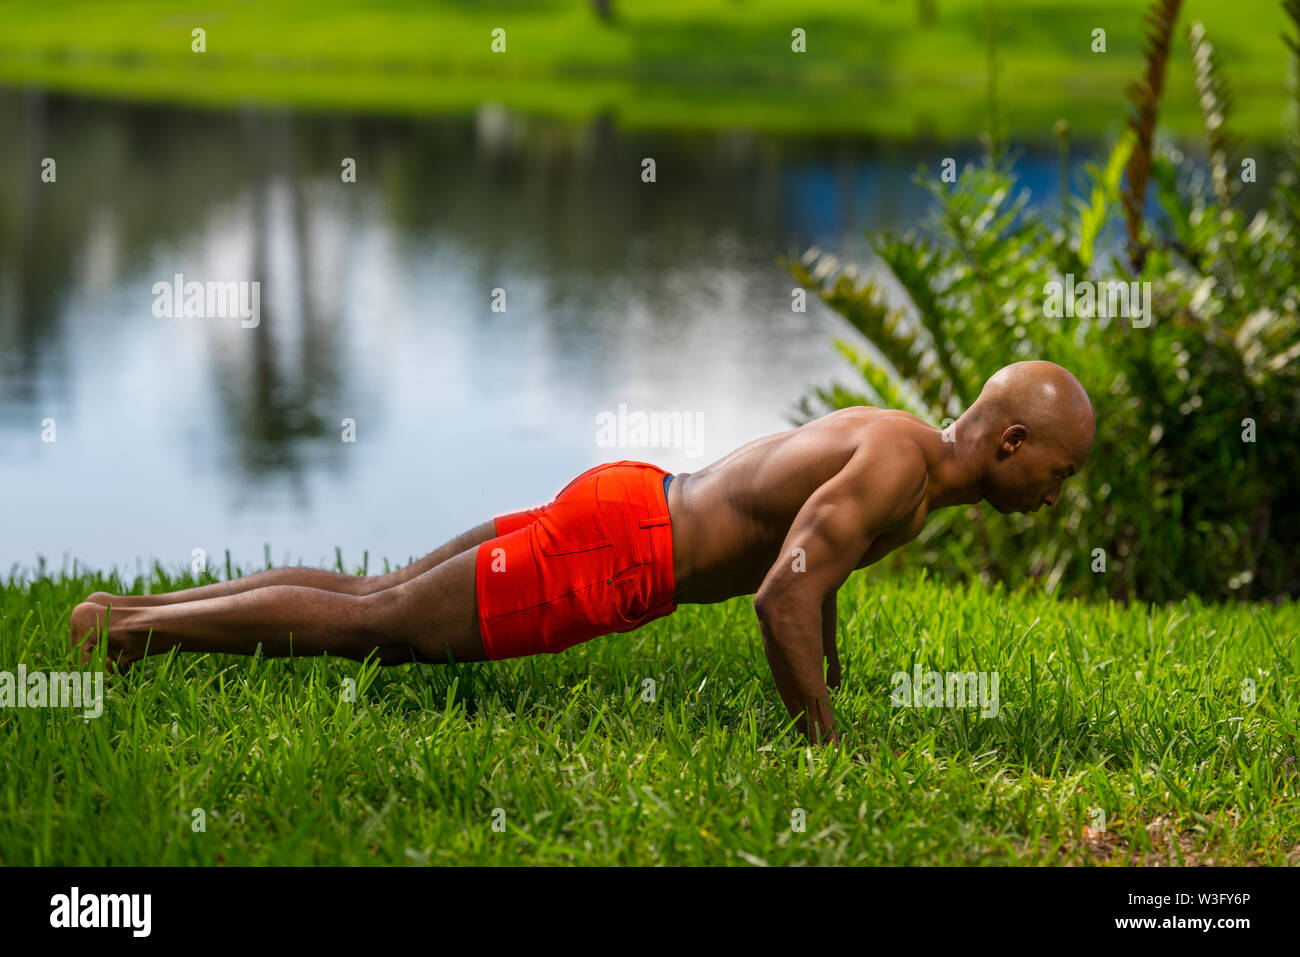 Photo of a fitness model posing plank on the grass. Image lit with off camera flash and natural lighting - Stock Image